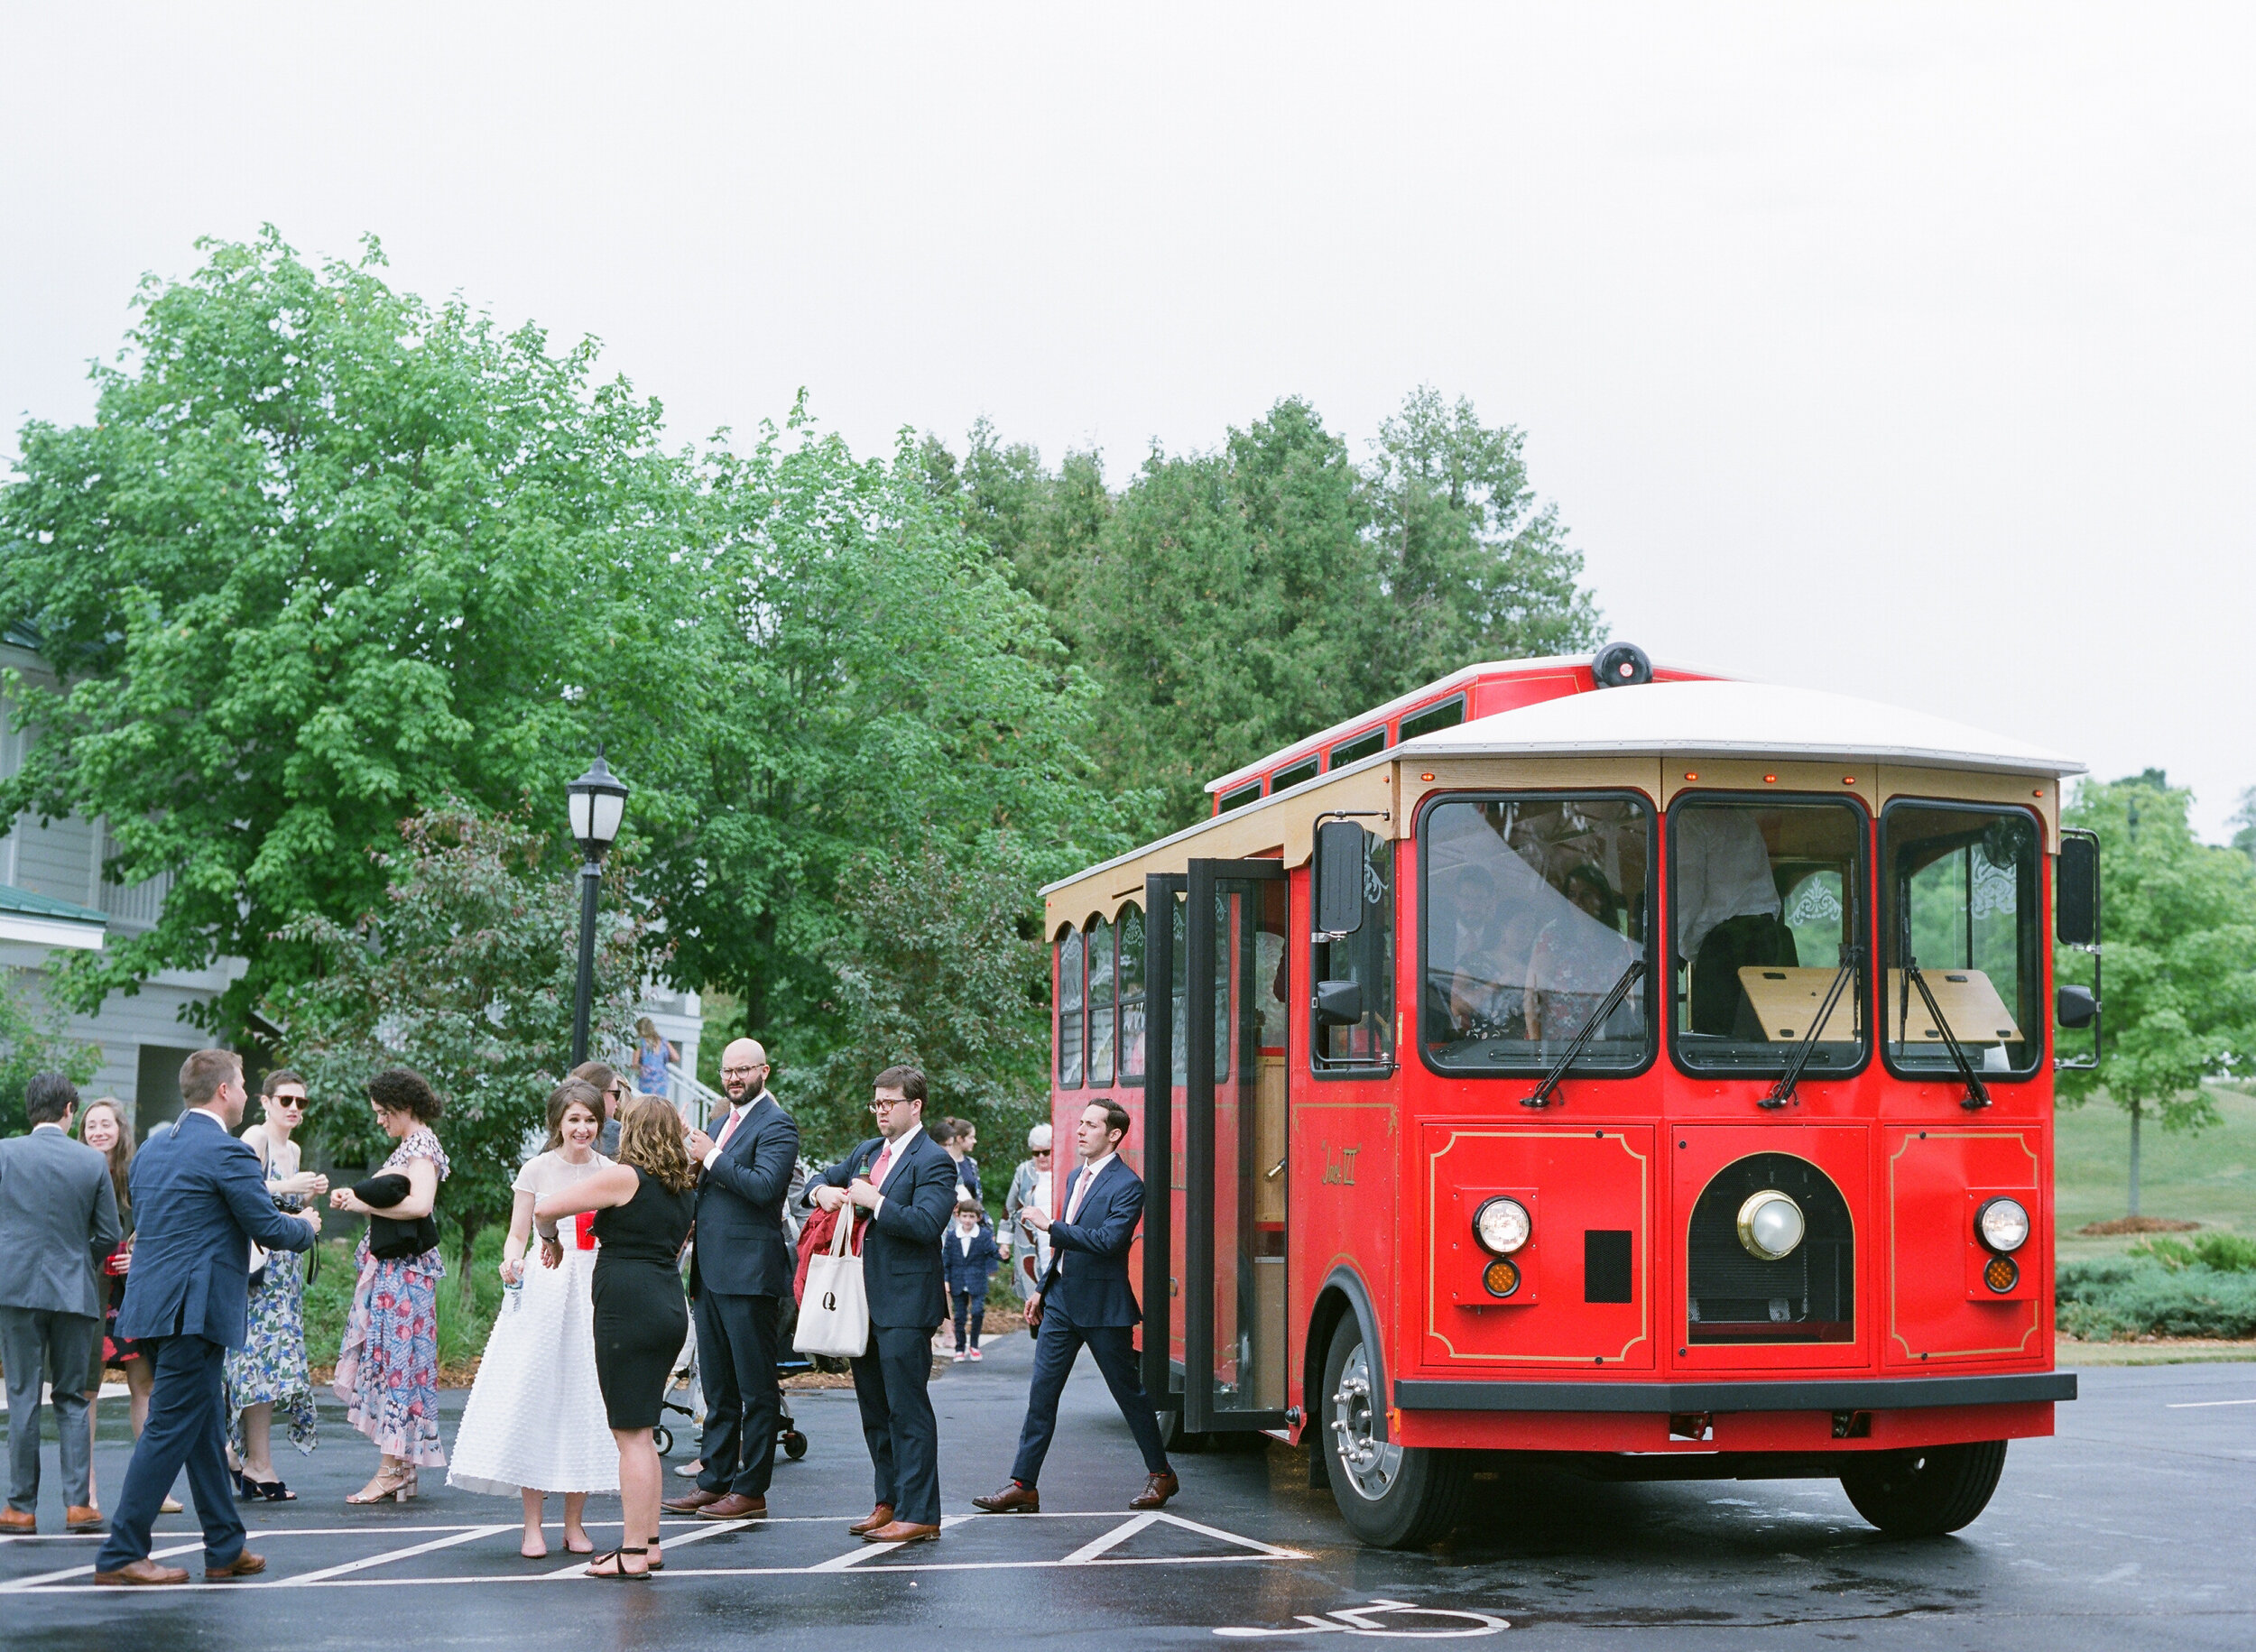 The Door County Trolley - is a reliable way to transport guests, and also makes for awesome photos with the iconic red trolleys.